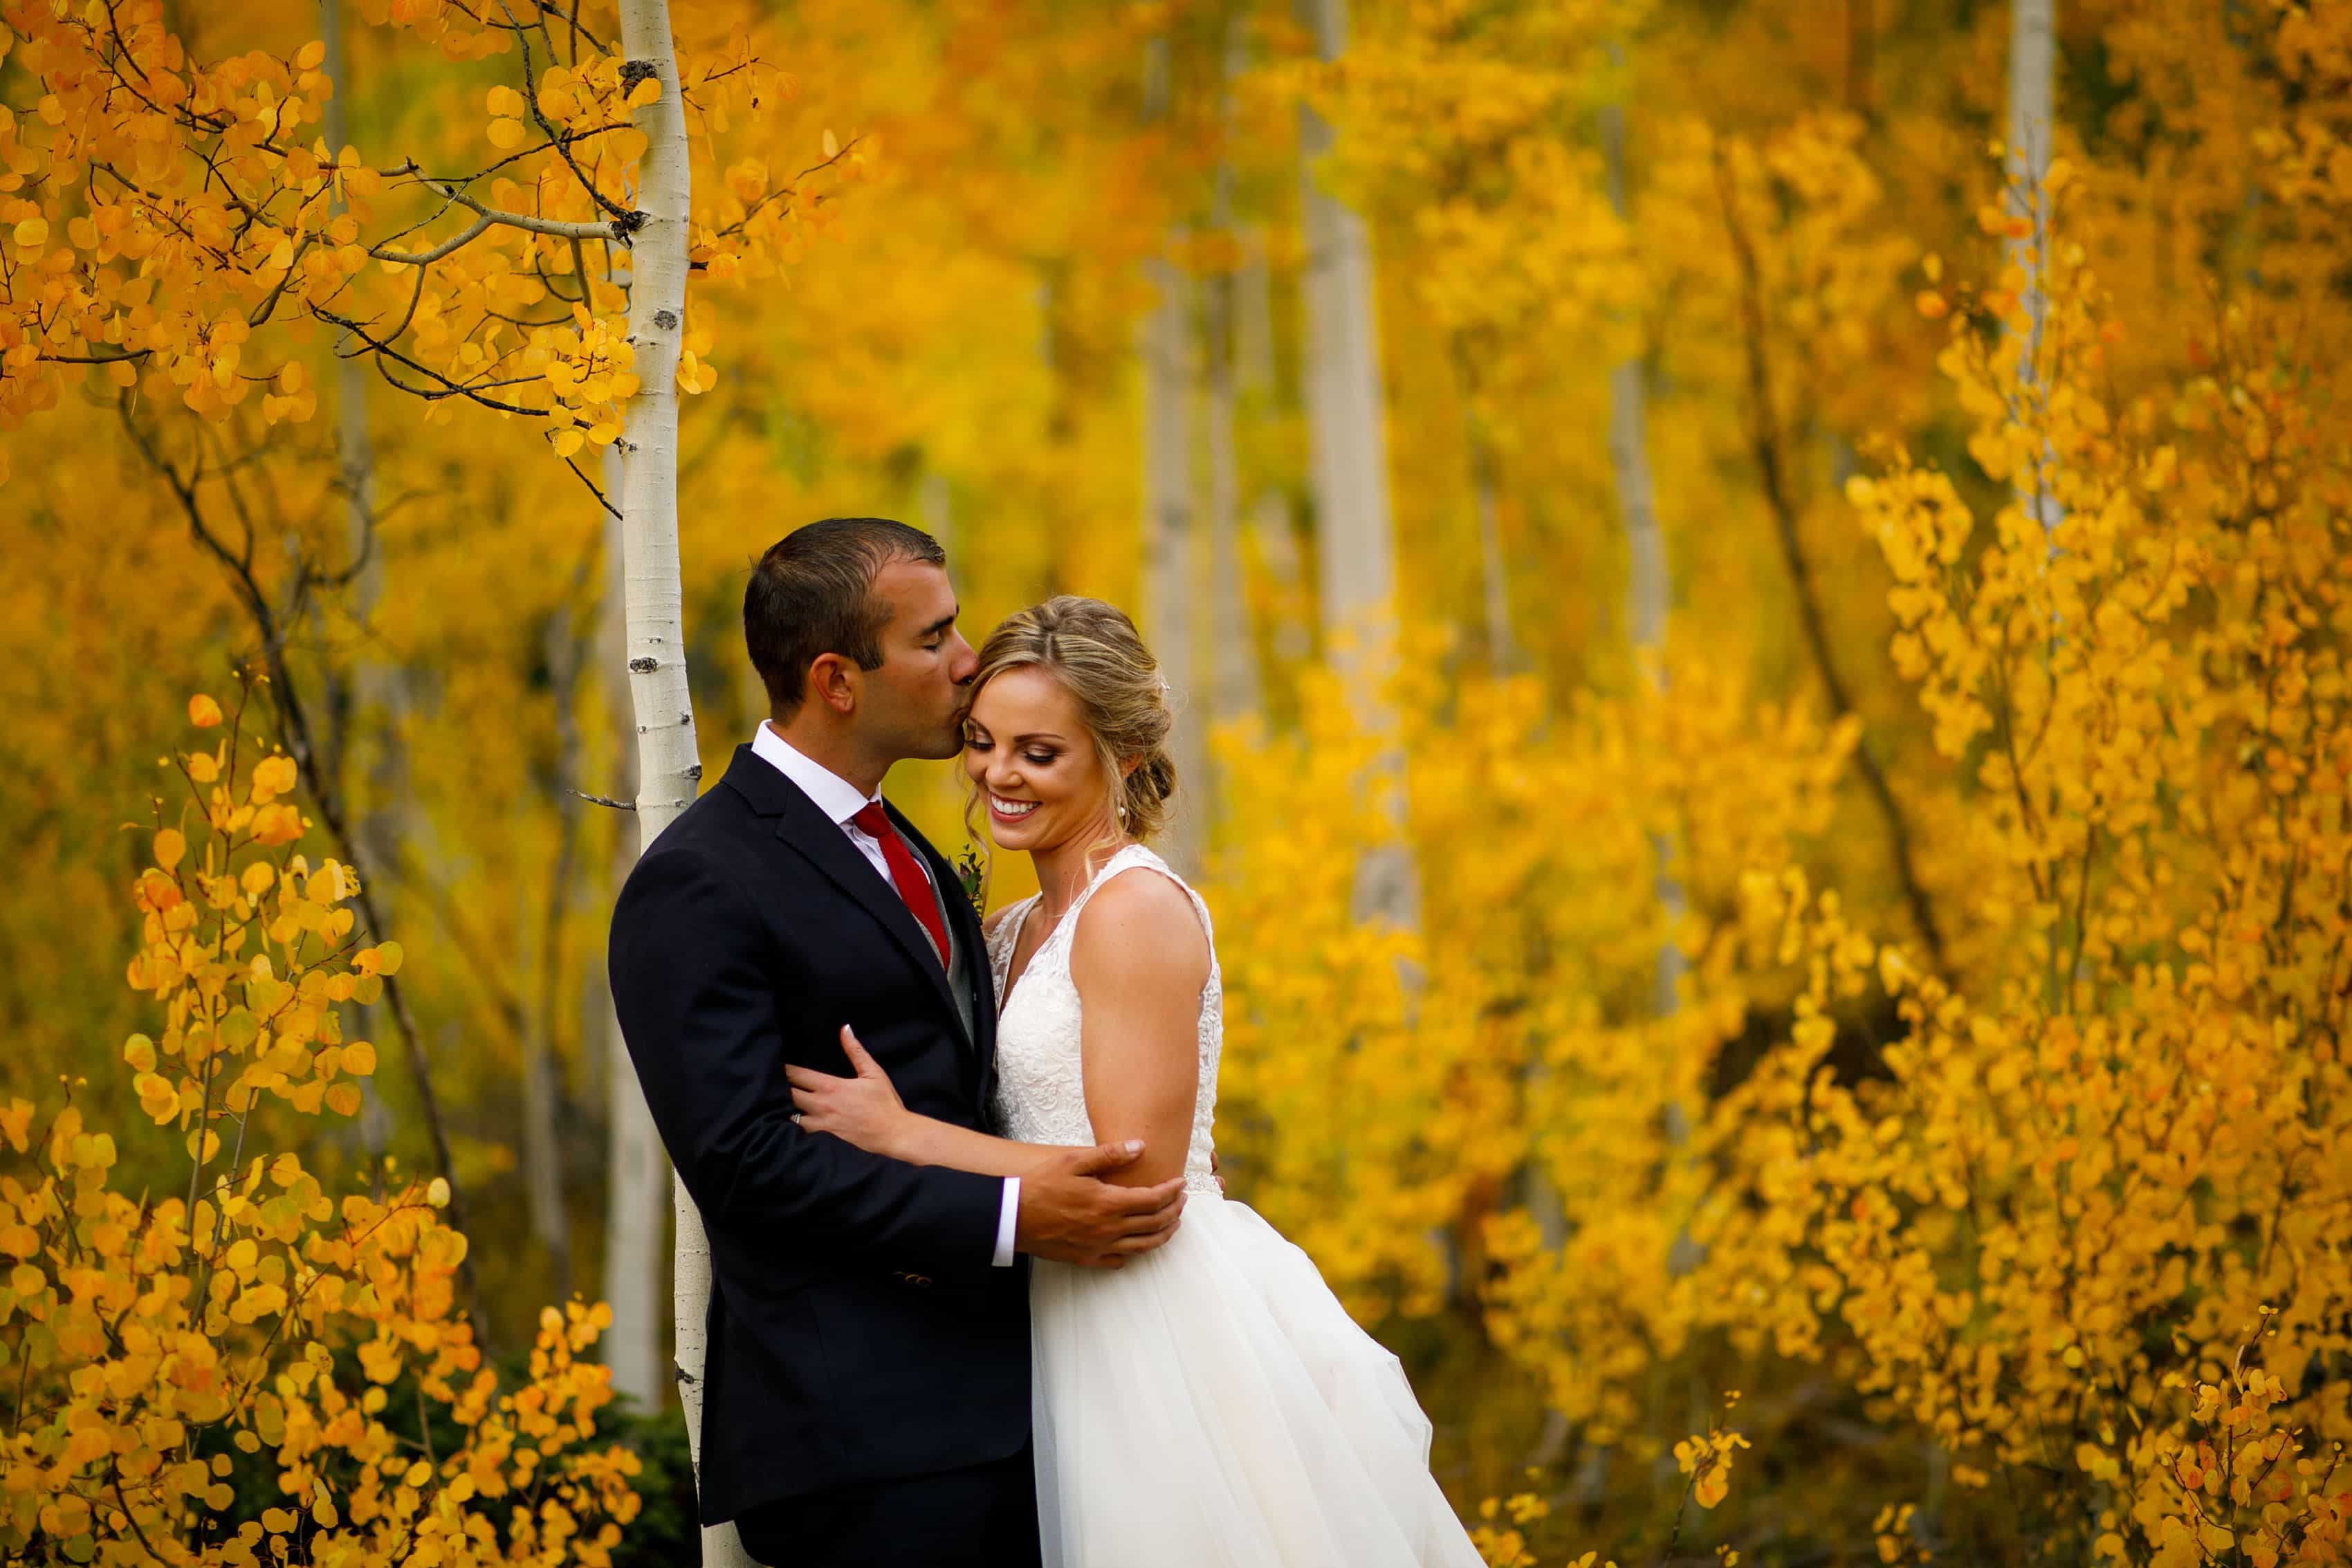 Meghan & Kevin's Fall Colors Wedding at Camp Hale